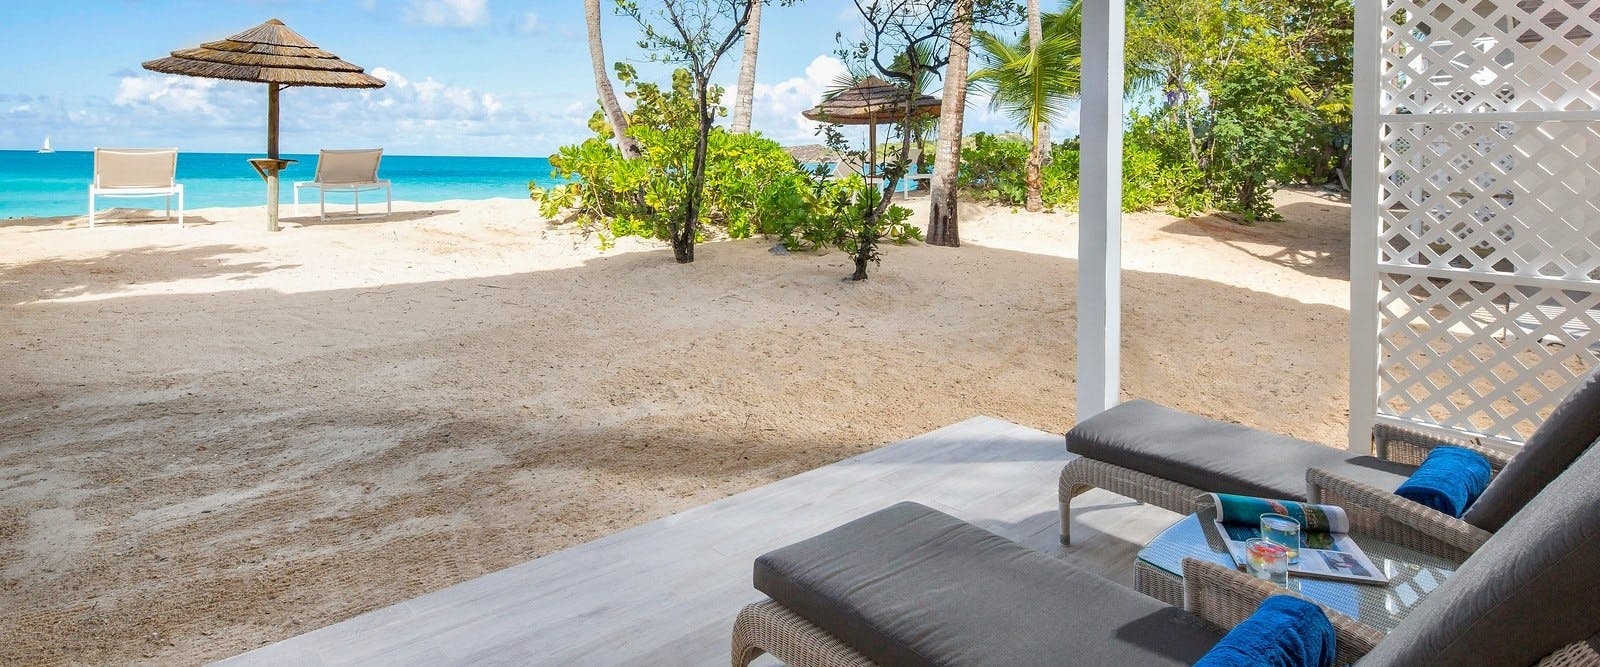 Deluxe Beachfront Room at Galley Bay Resort & Spa, Antigua